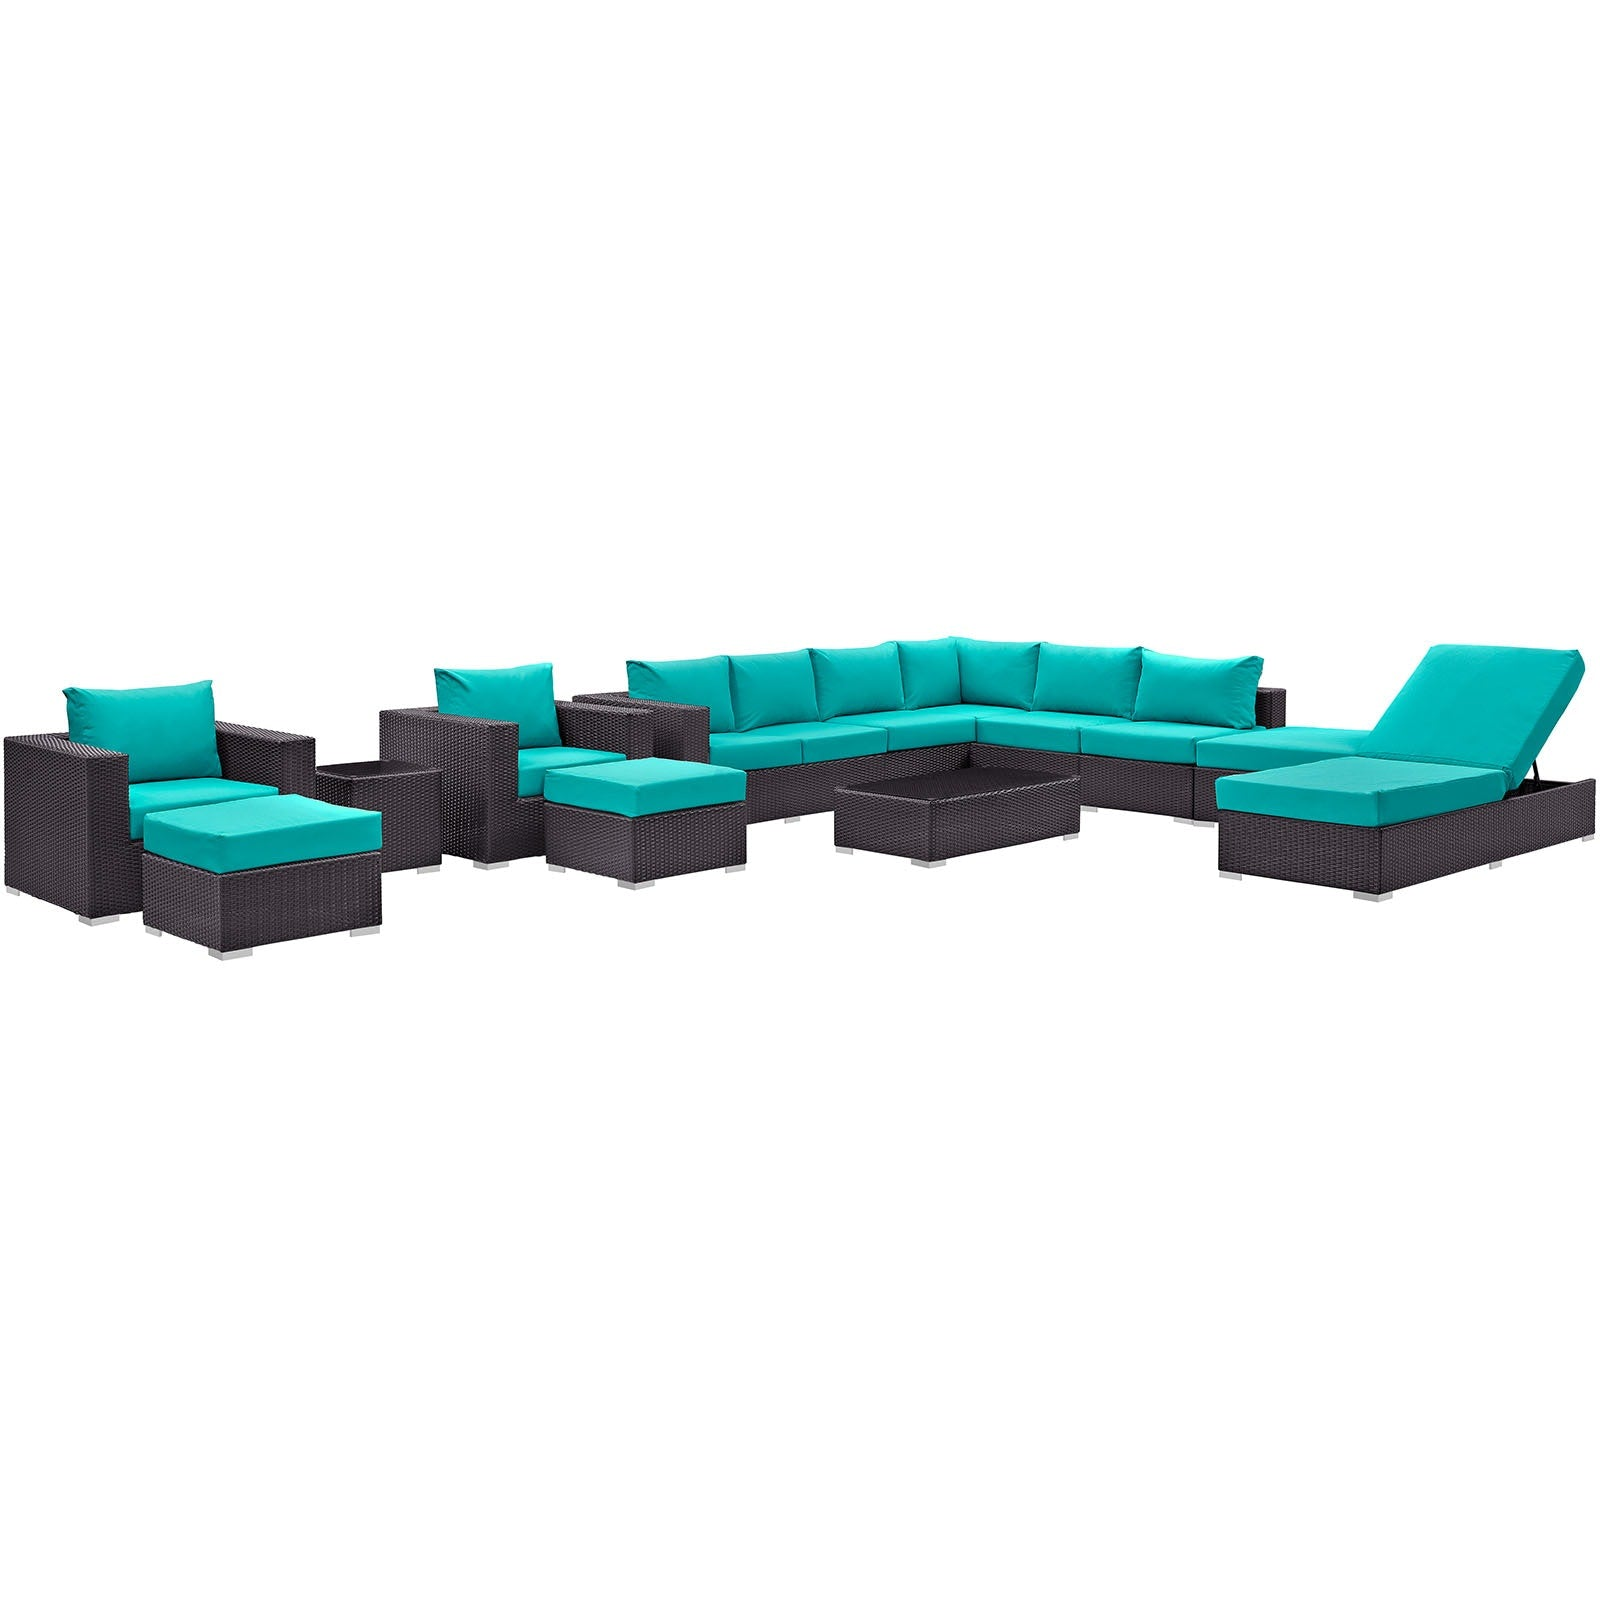 Convene 12 Piece Outdoor Patio Sectional Set - Espresso Turquoise